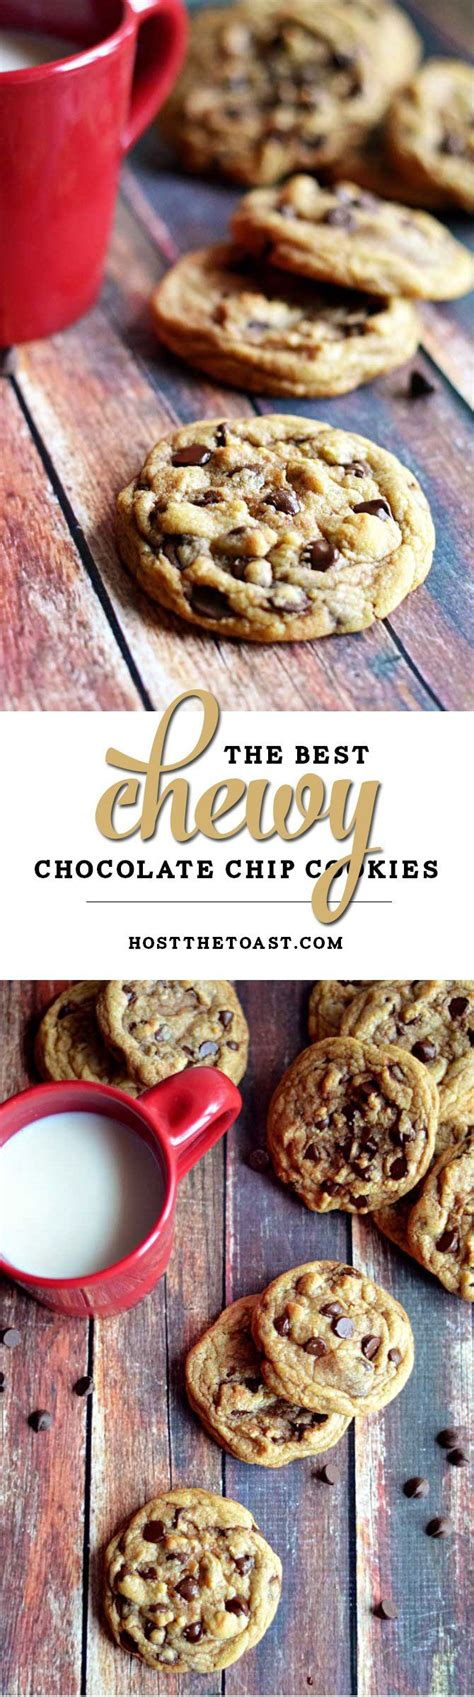 choco chips by grosir bubuk 27 25 best ideas about chocolate chip cookies on